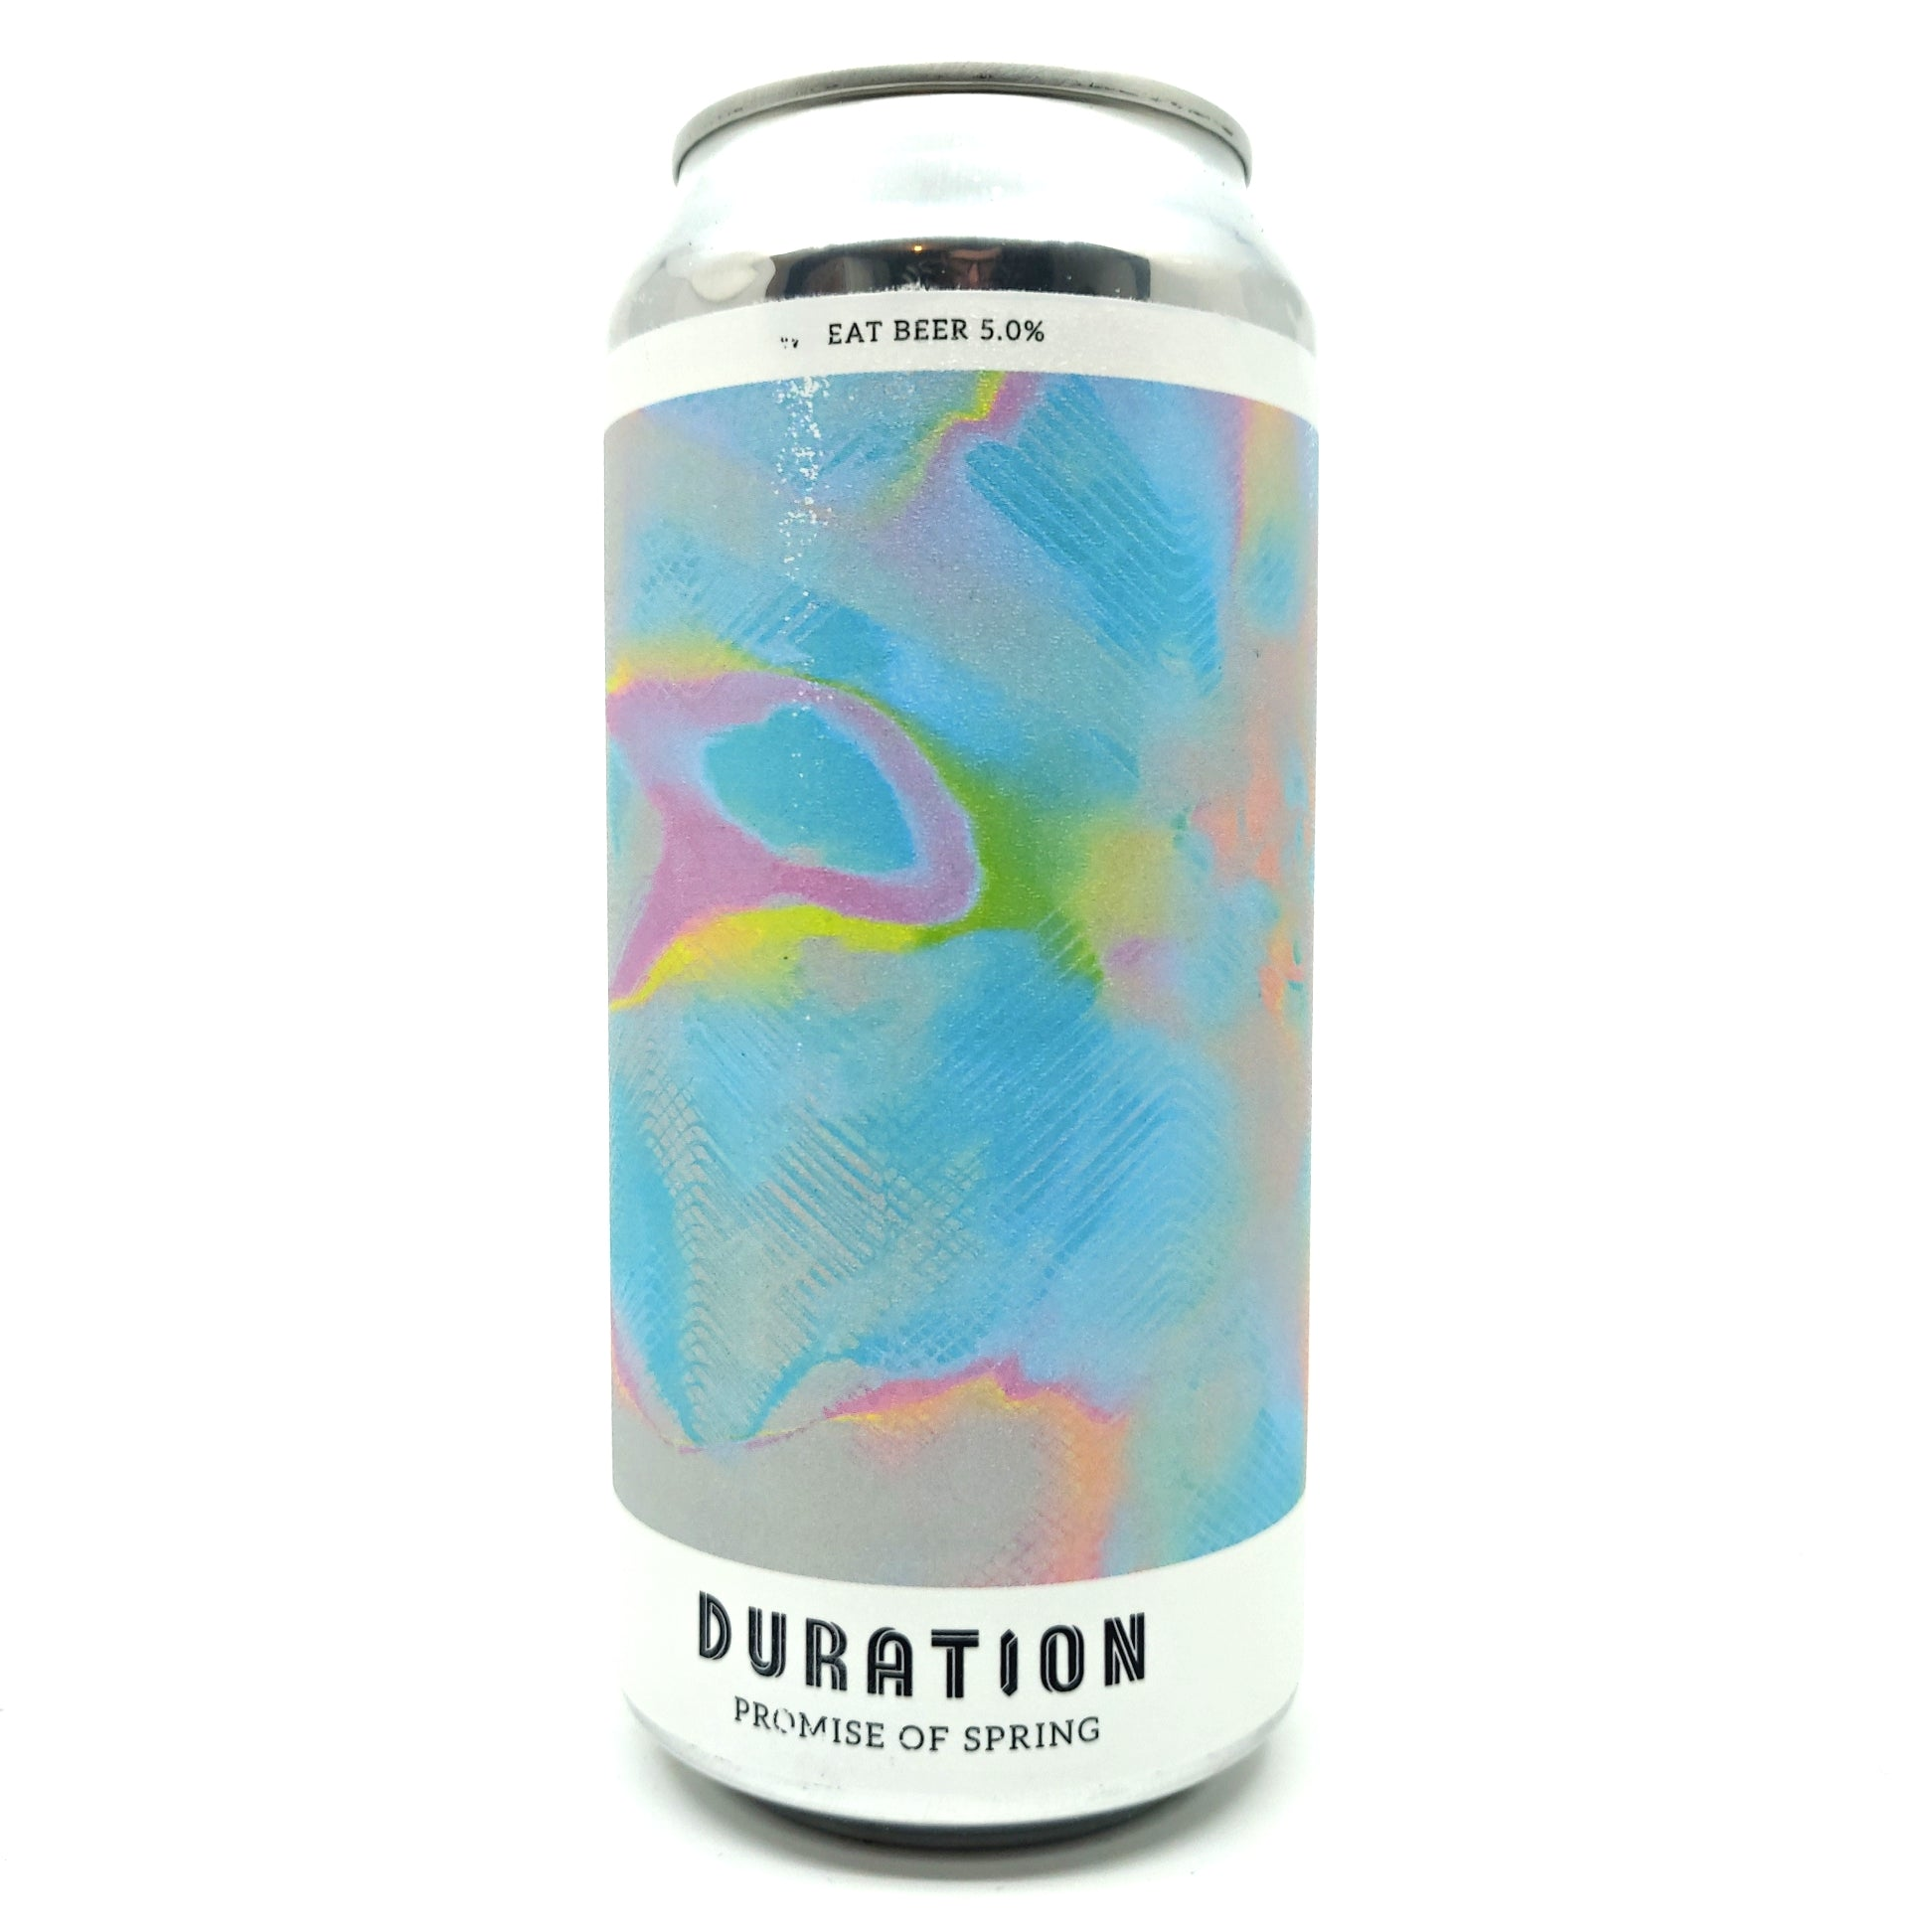 Duration Promise of Spring Wheat Beer 5% (440ml can)-Hop Burns & Black